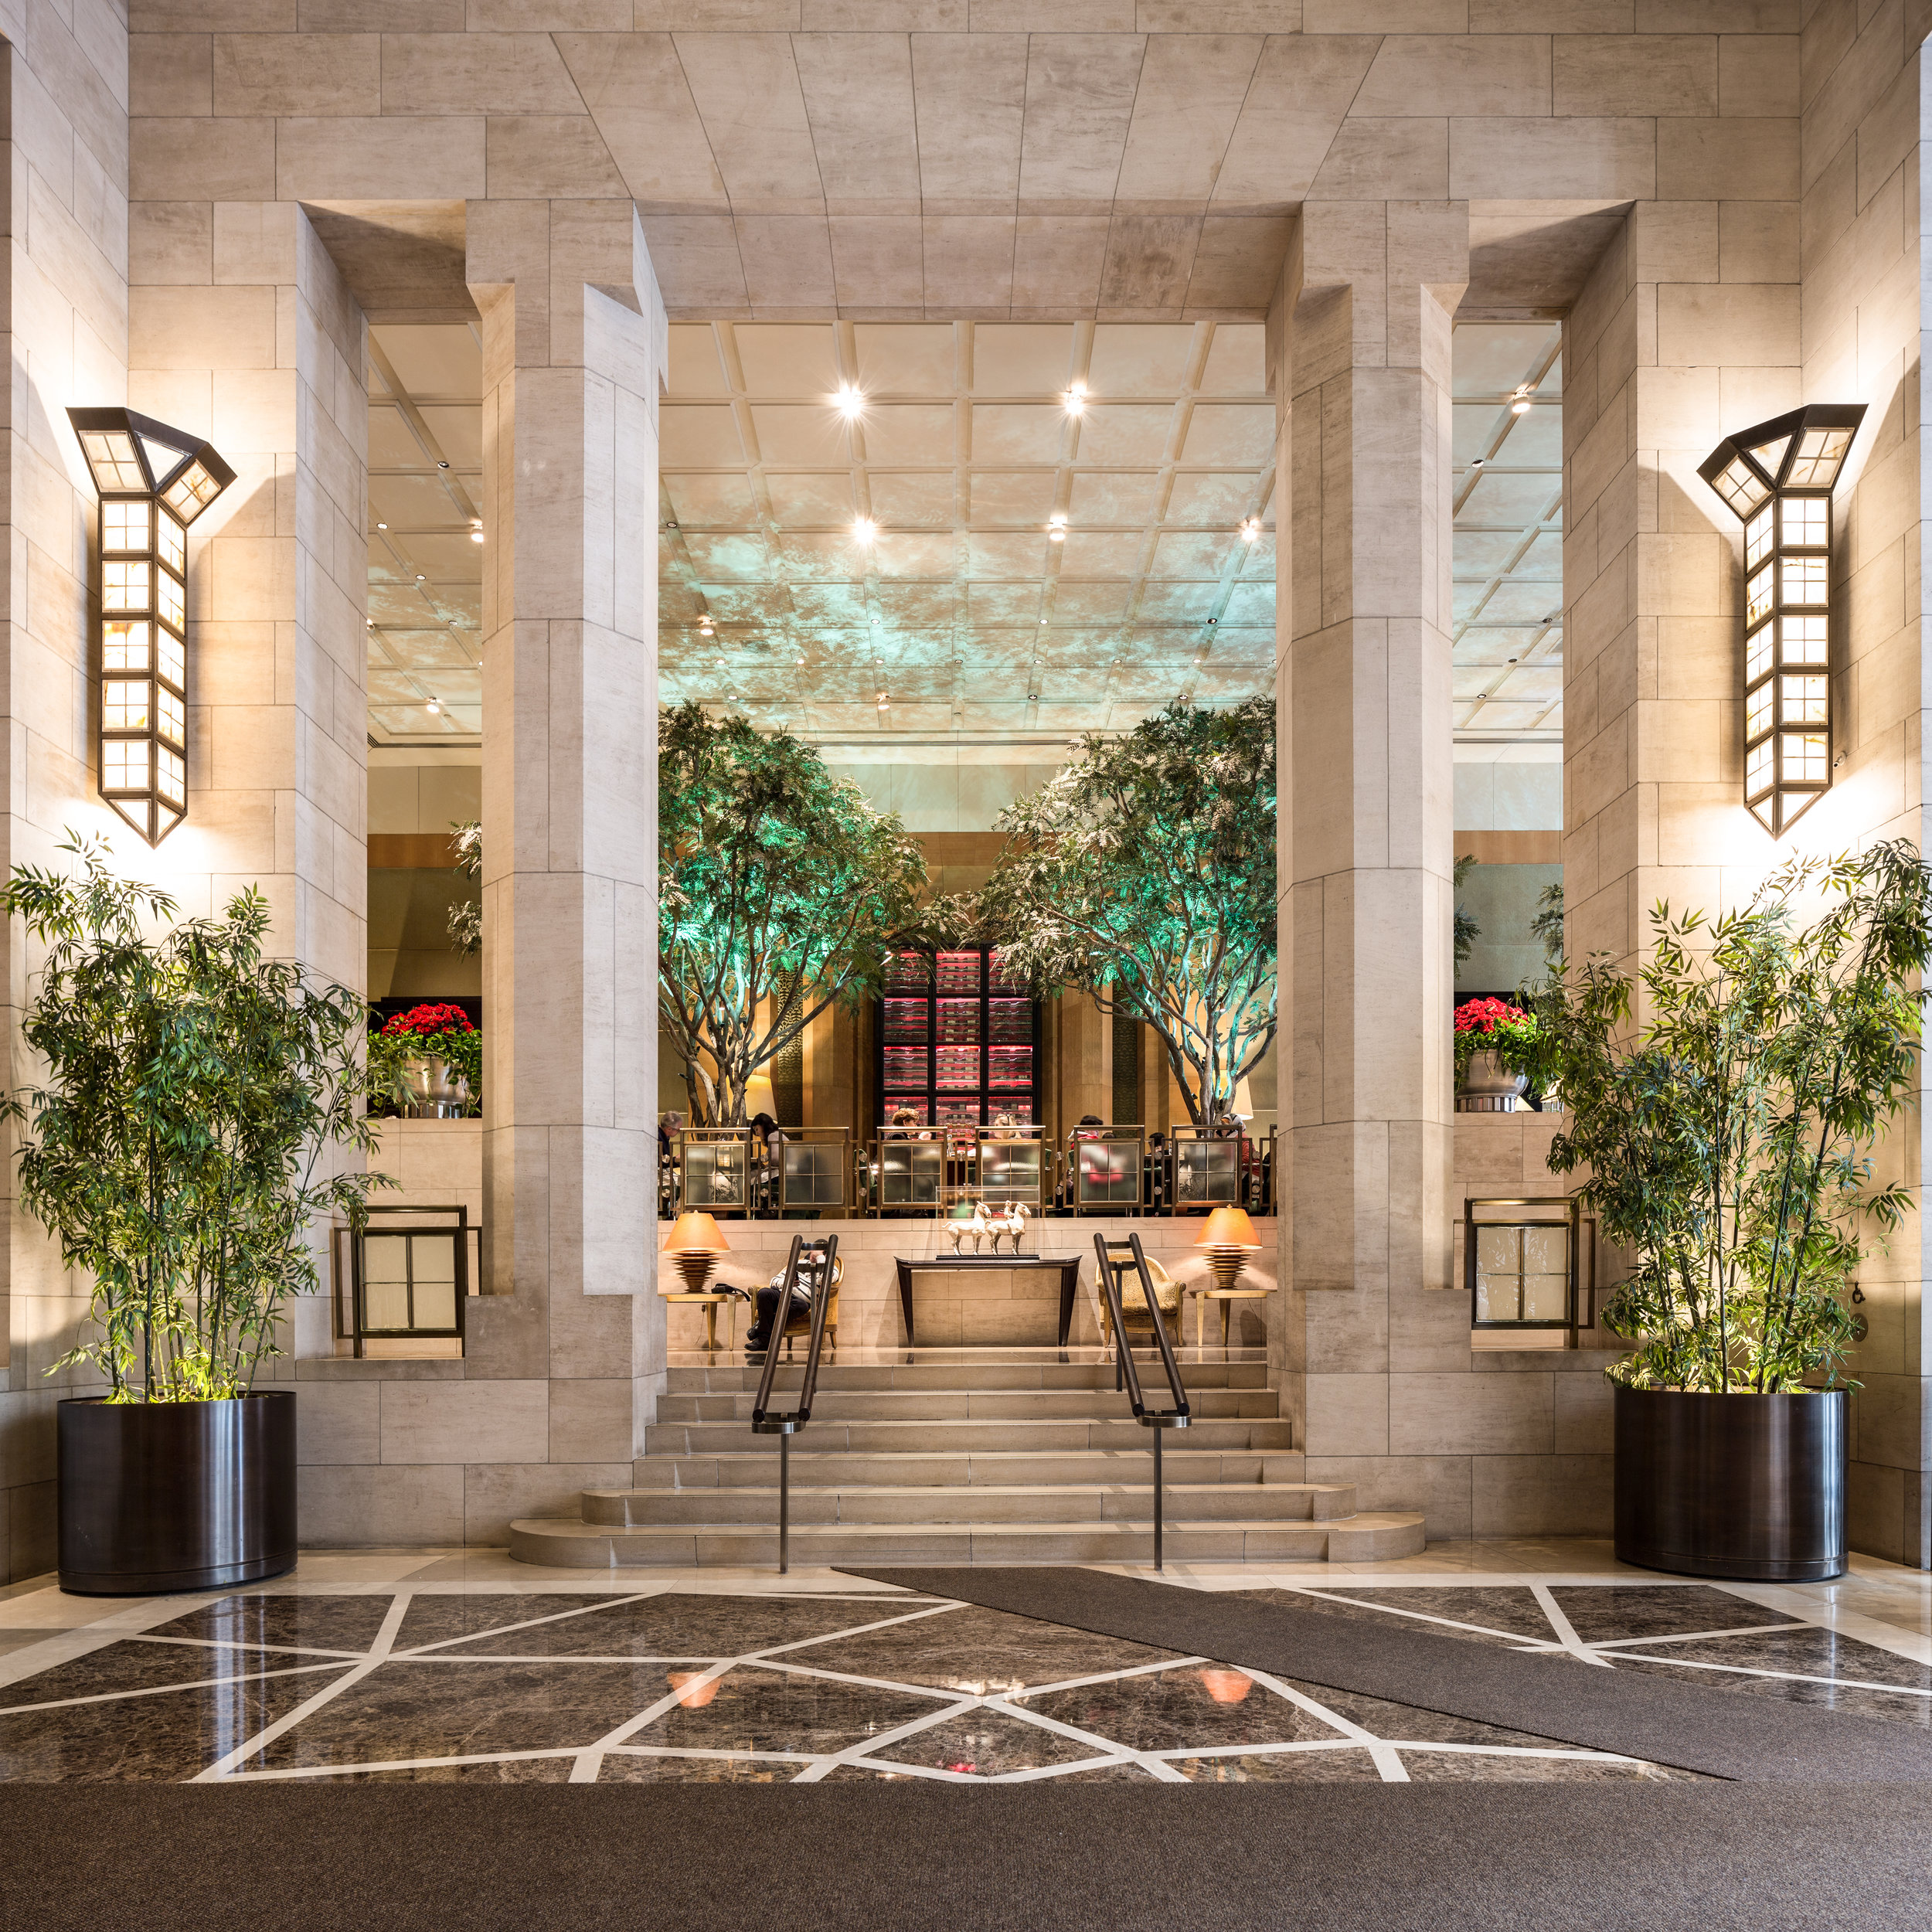 Architectural Photography - The Four Seasons